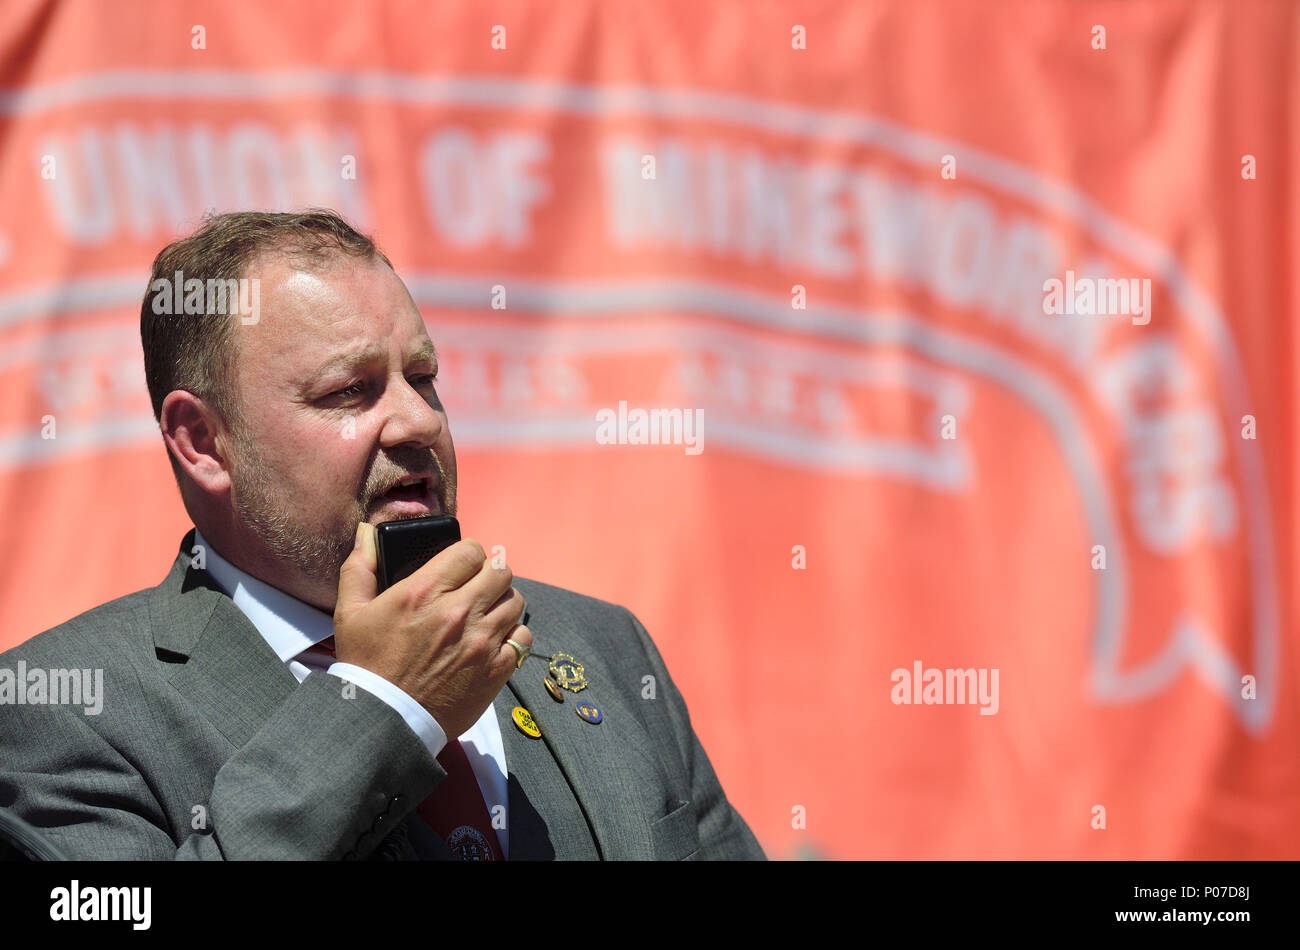 Chris Kitchen - General Secretary, National Union of Mineworkers (UK) speaking at the UK Mineworkers' Pension Campaign Rally in Westminster, June 6th  - Stock Image